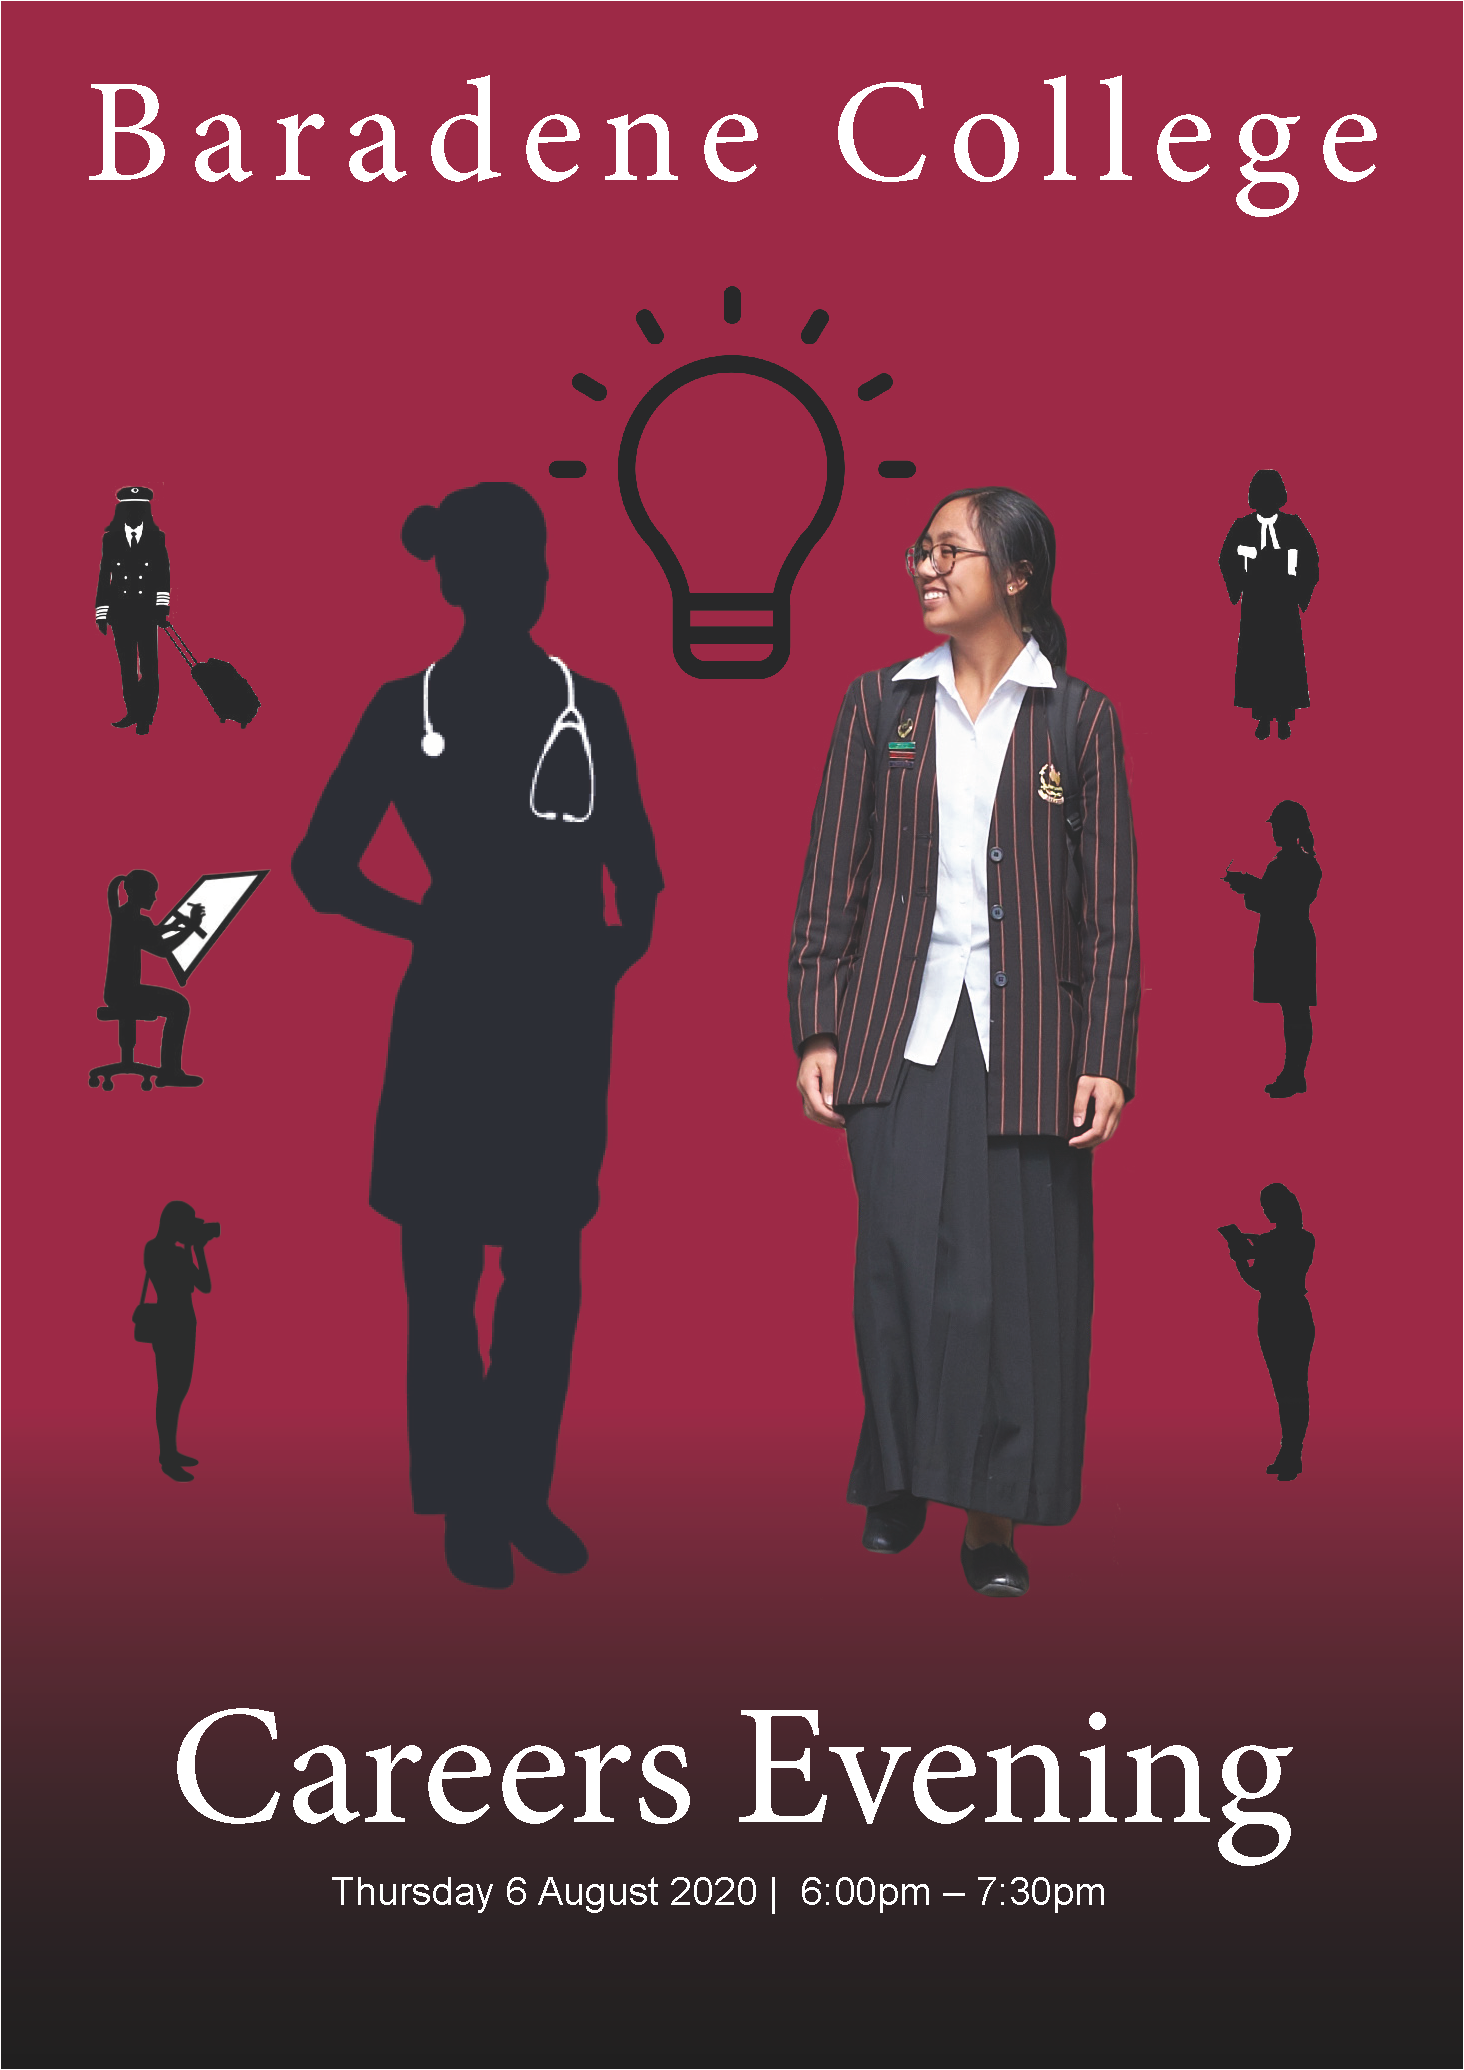 Careers Evening 2020 - 6 August